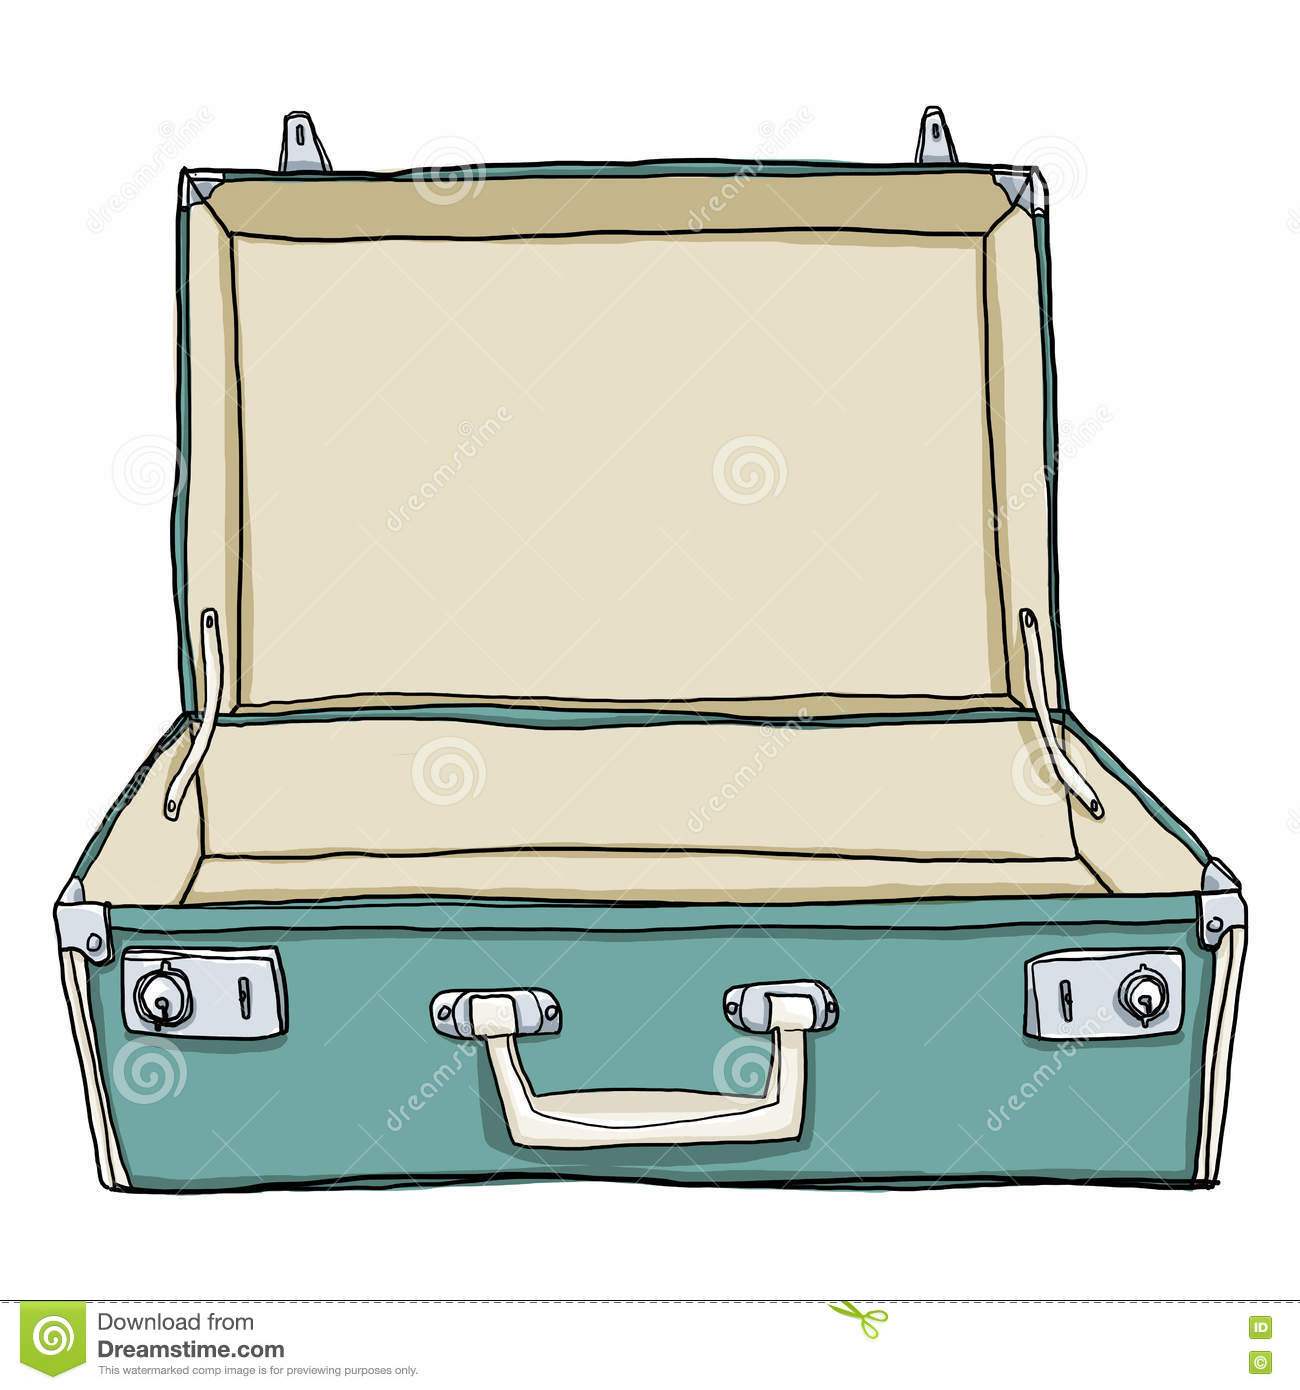 vintage luggage suitcases travel open is empty cute illustrat stock illustration. Black Bedroom Furniture Sets. Home Design Ideas